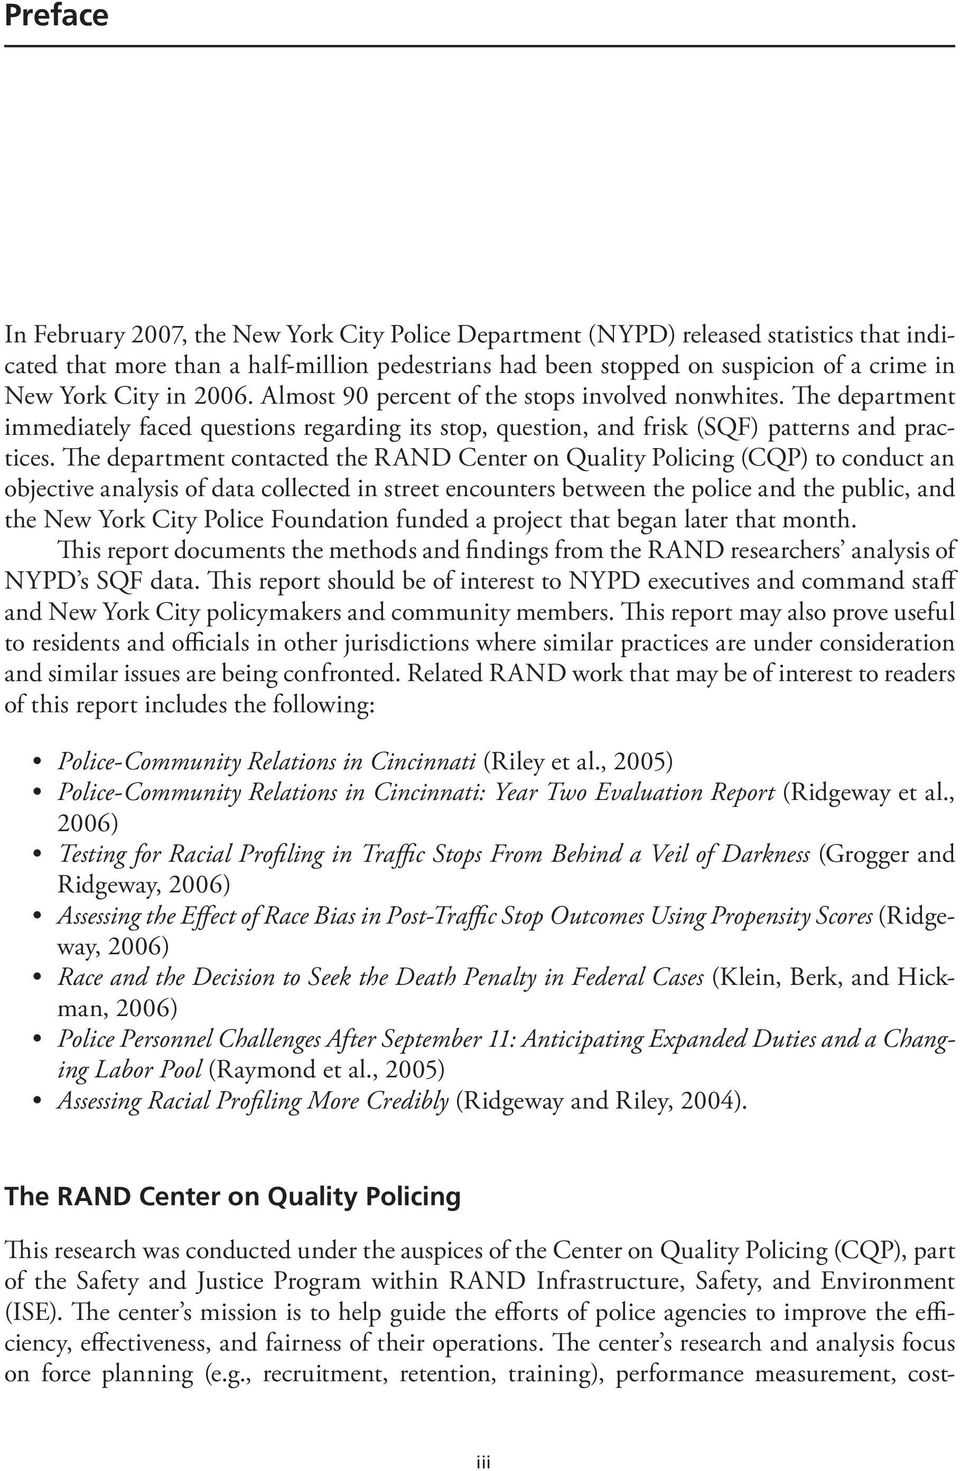 The department contacted the RAND Center on Quality Policing (CQP) to conduct an objective analysis of data collected in street encounters between the police and the public, and the New York City